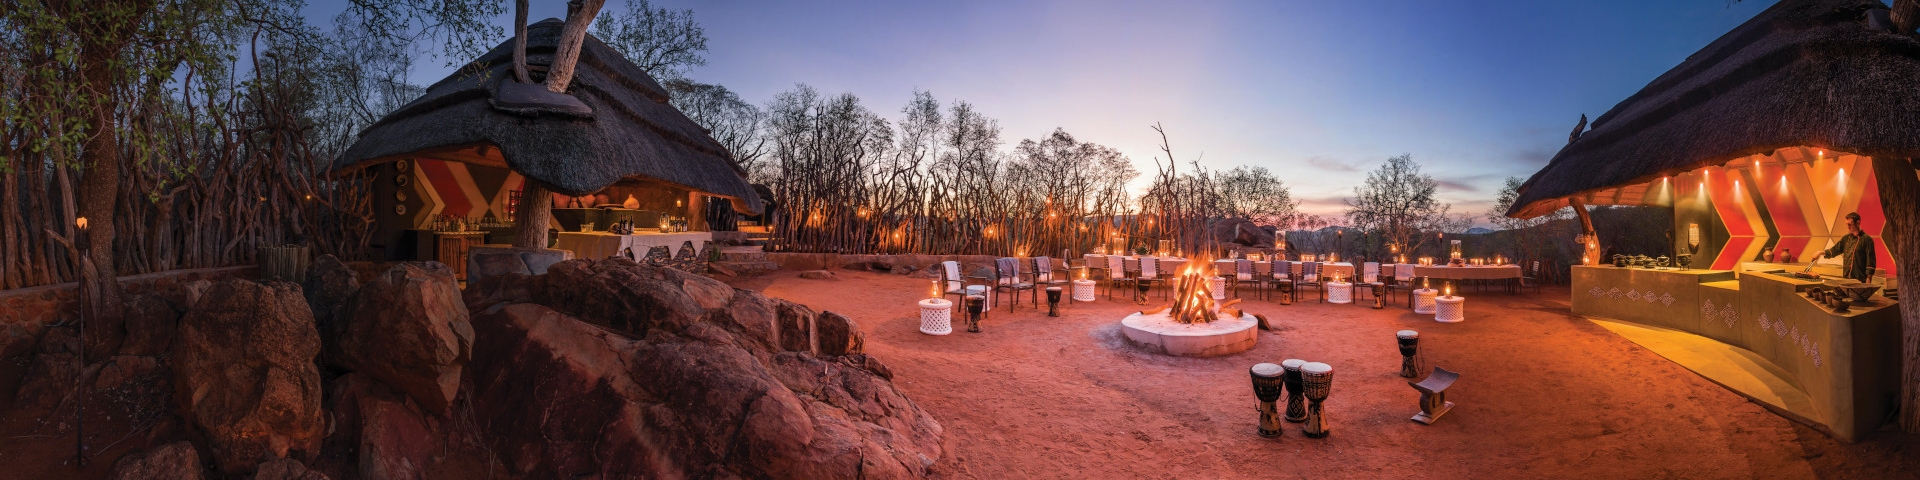 Accommodation in Madikwe Game Reserve South Africa